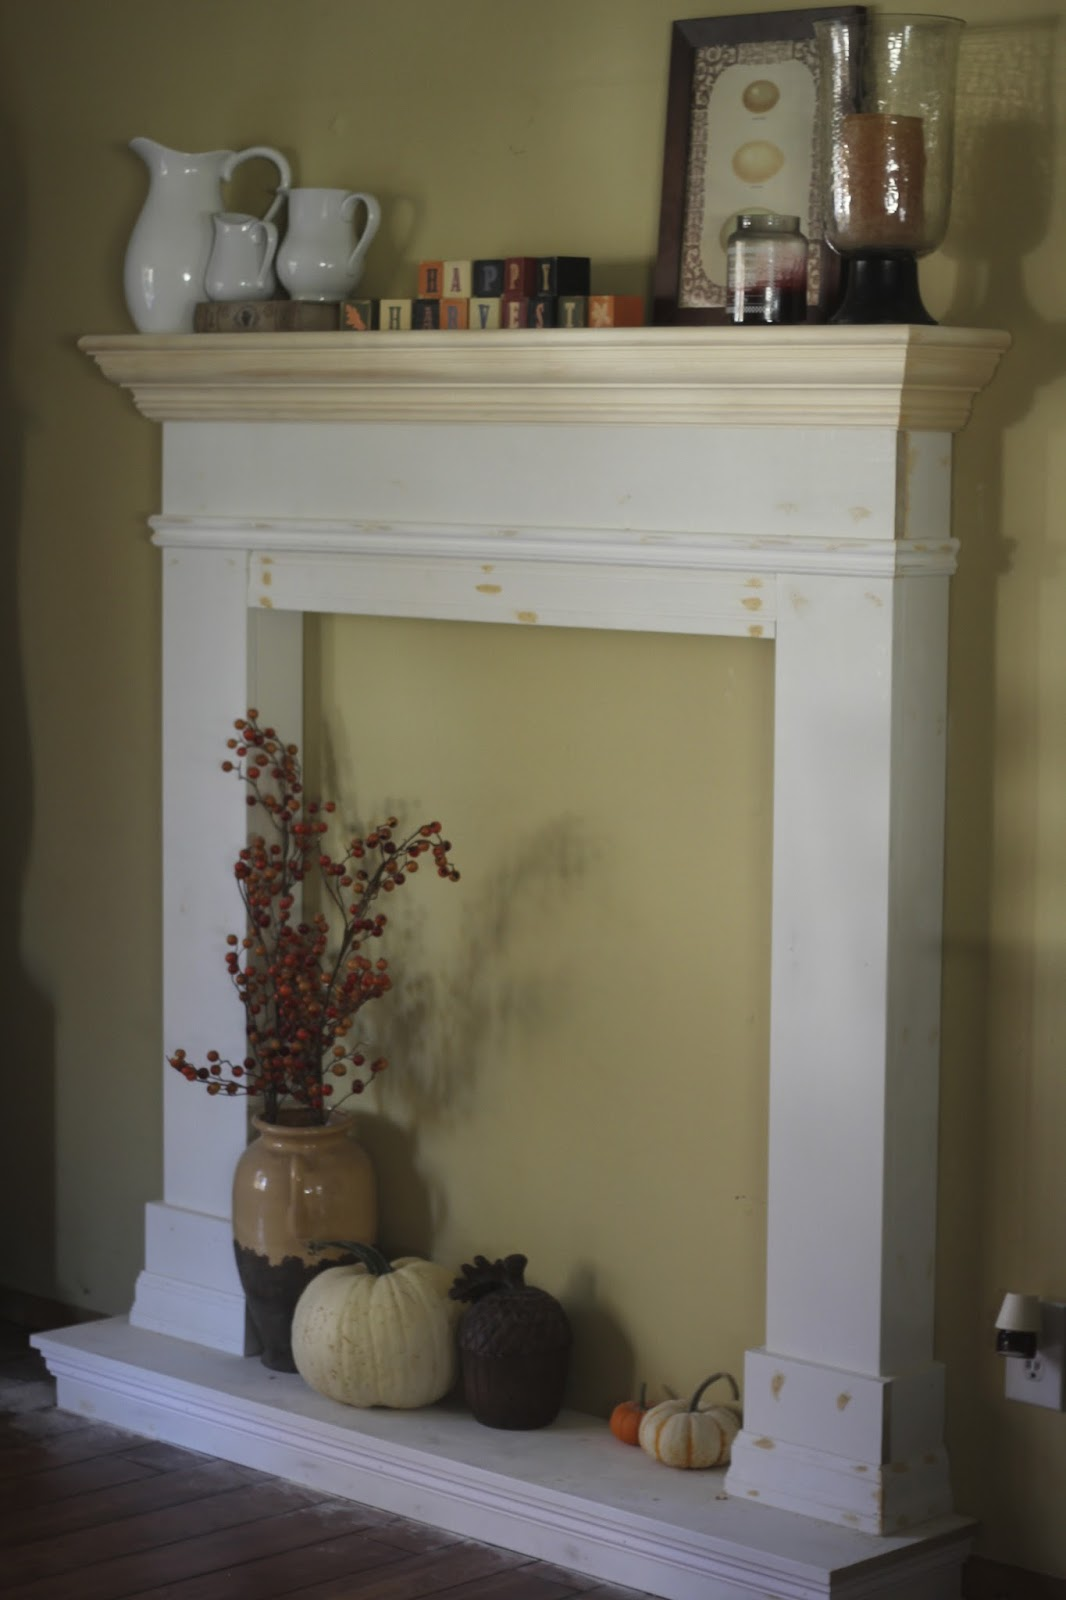 Golden Boys and Me: Our Faux Fireplace